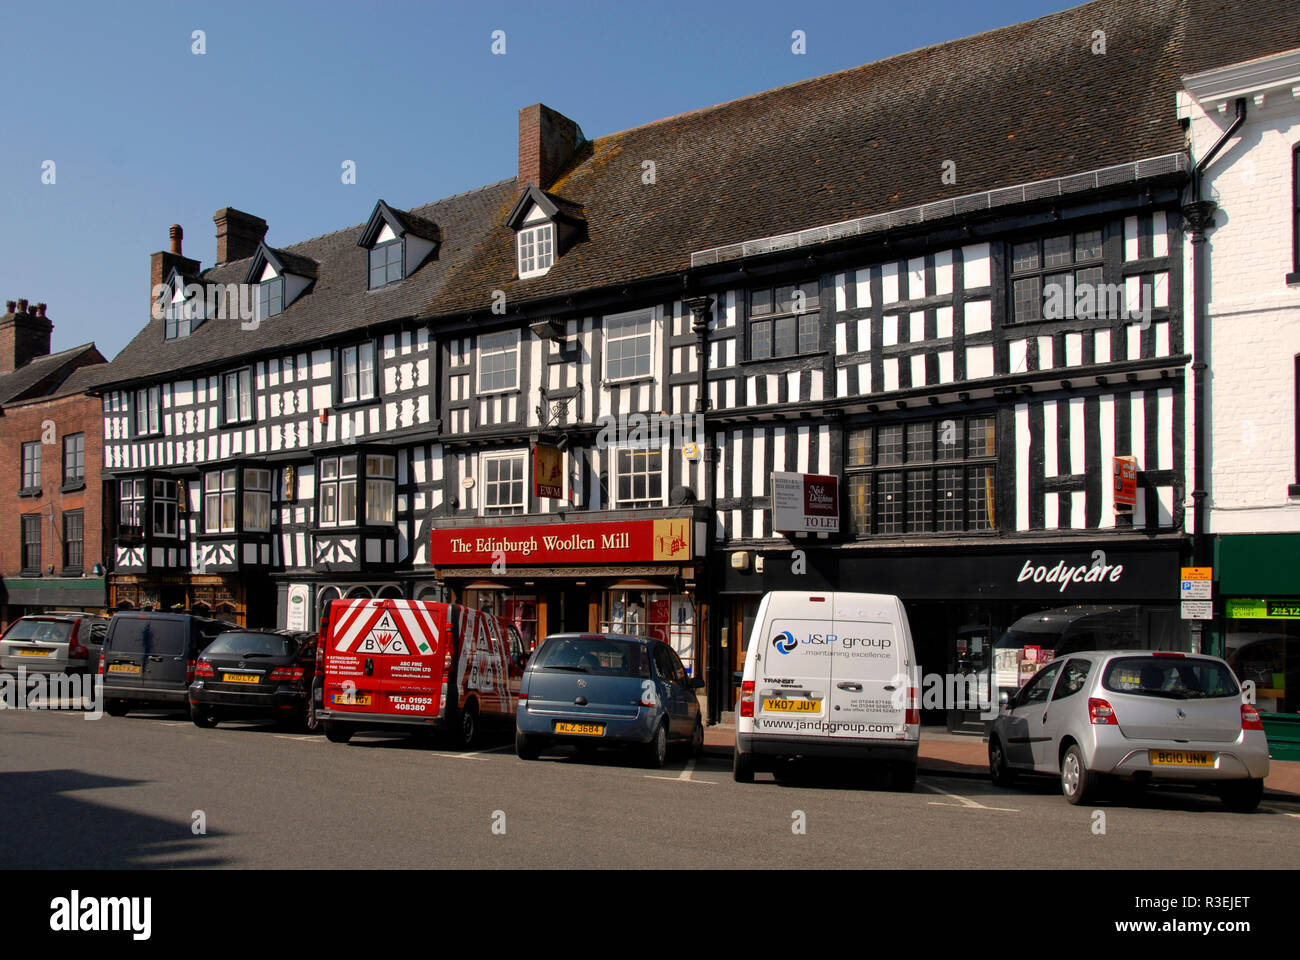 Row of shops, High Street, Bridgnorth, Shropshire, England, with parked vehicles in front - Stock Image